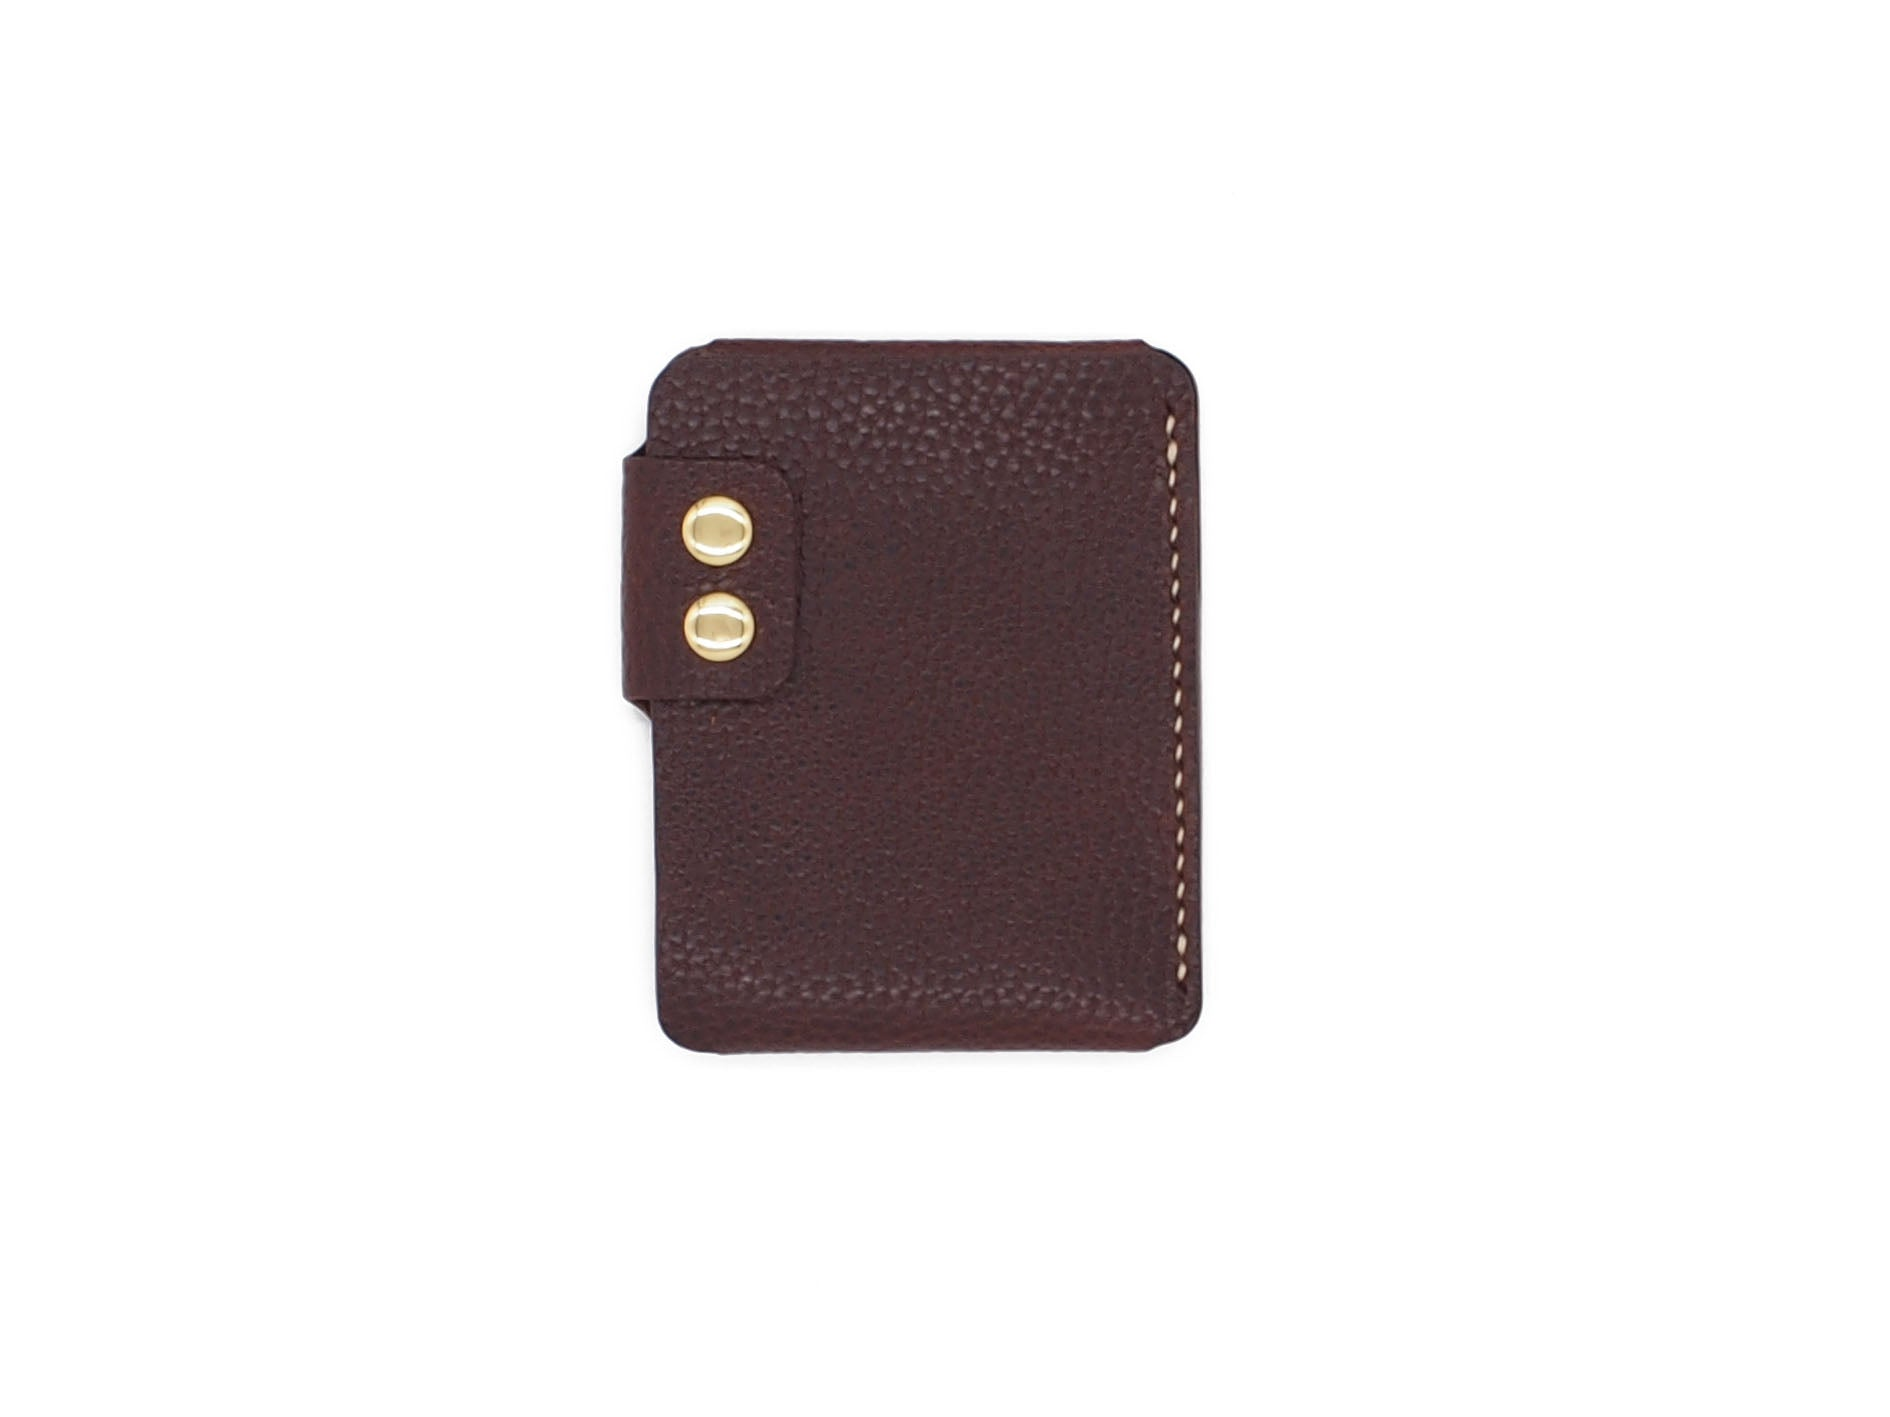 Sentry - Minimalist Wallet In Pebbled Burgundy